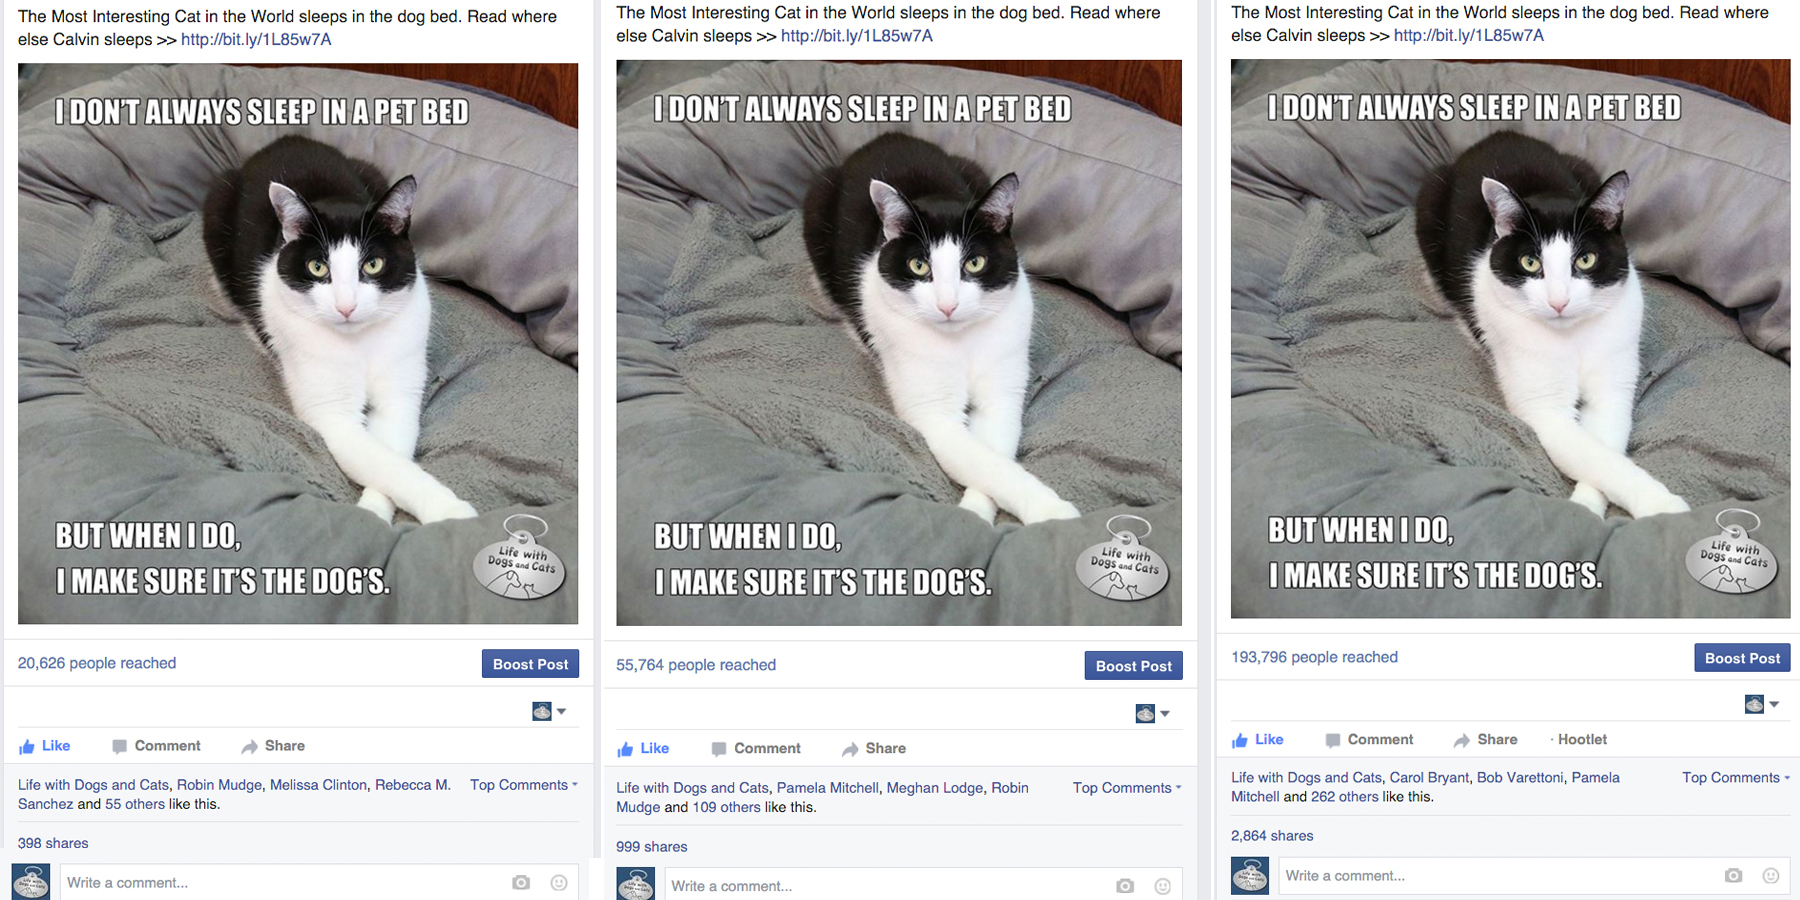 The Most Interesting Cat in the World Goes Viral